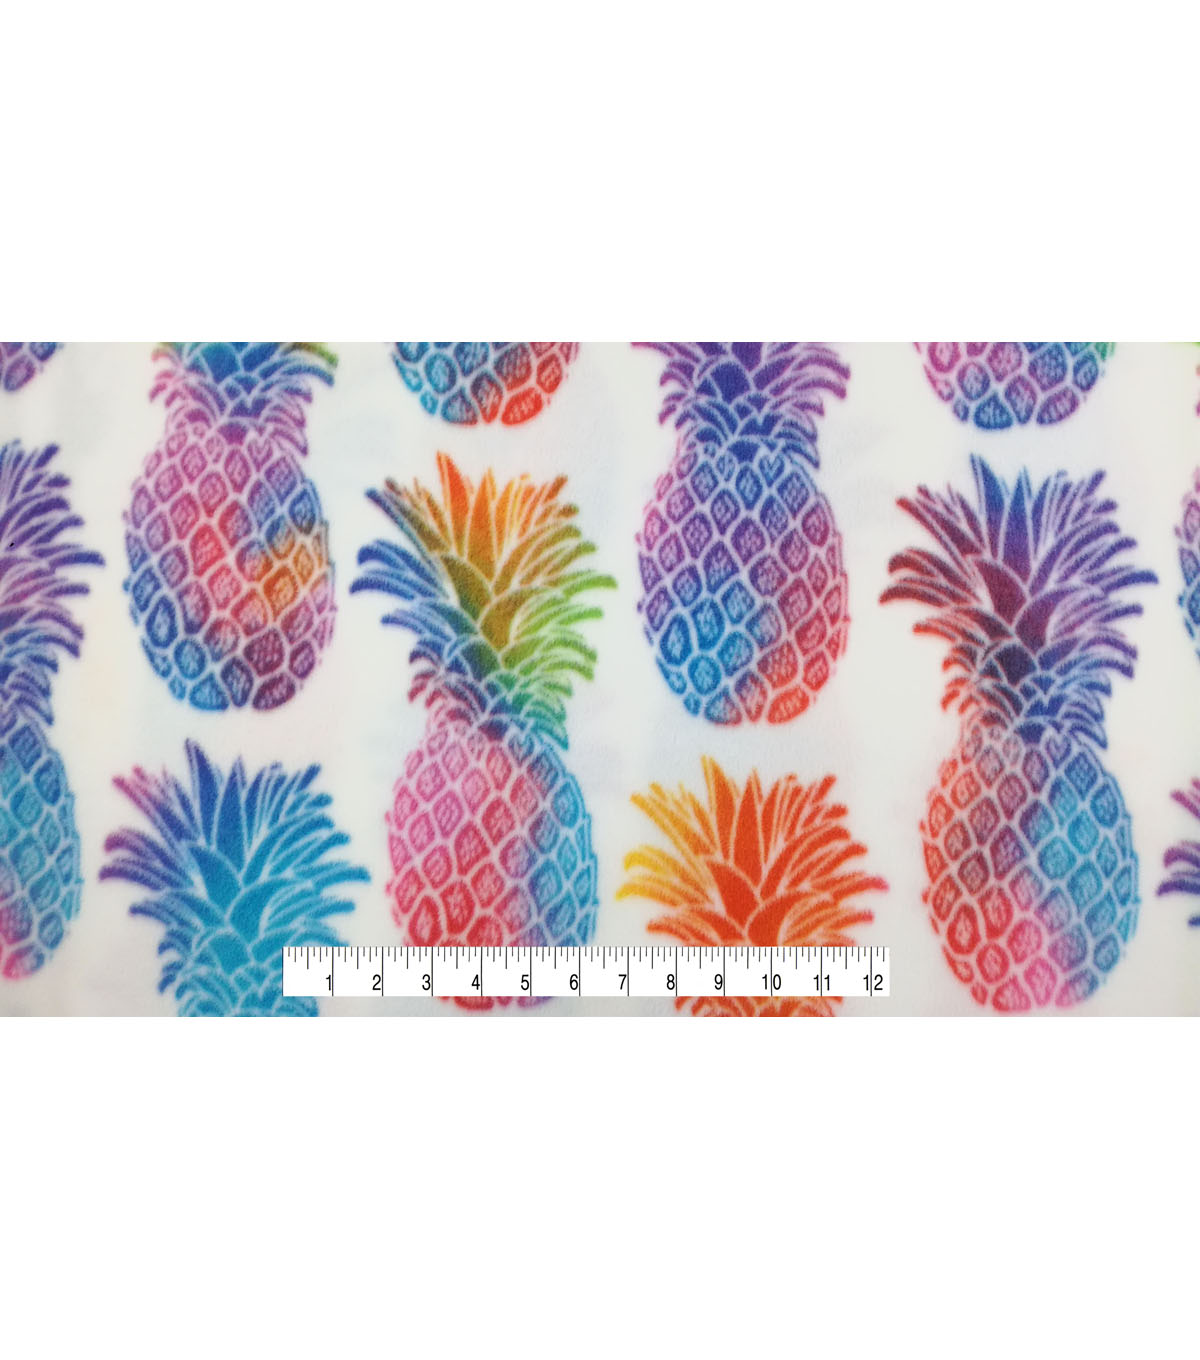 Anti-Pill Fleece Fabric -Bright Pineapple